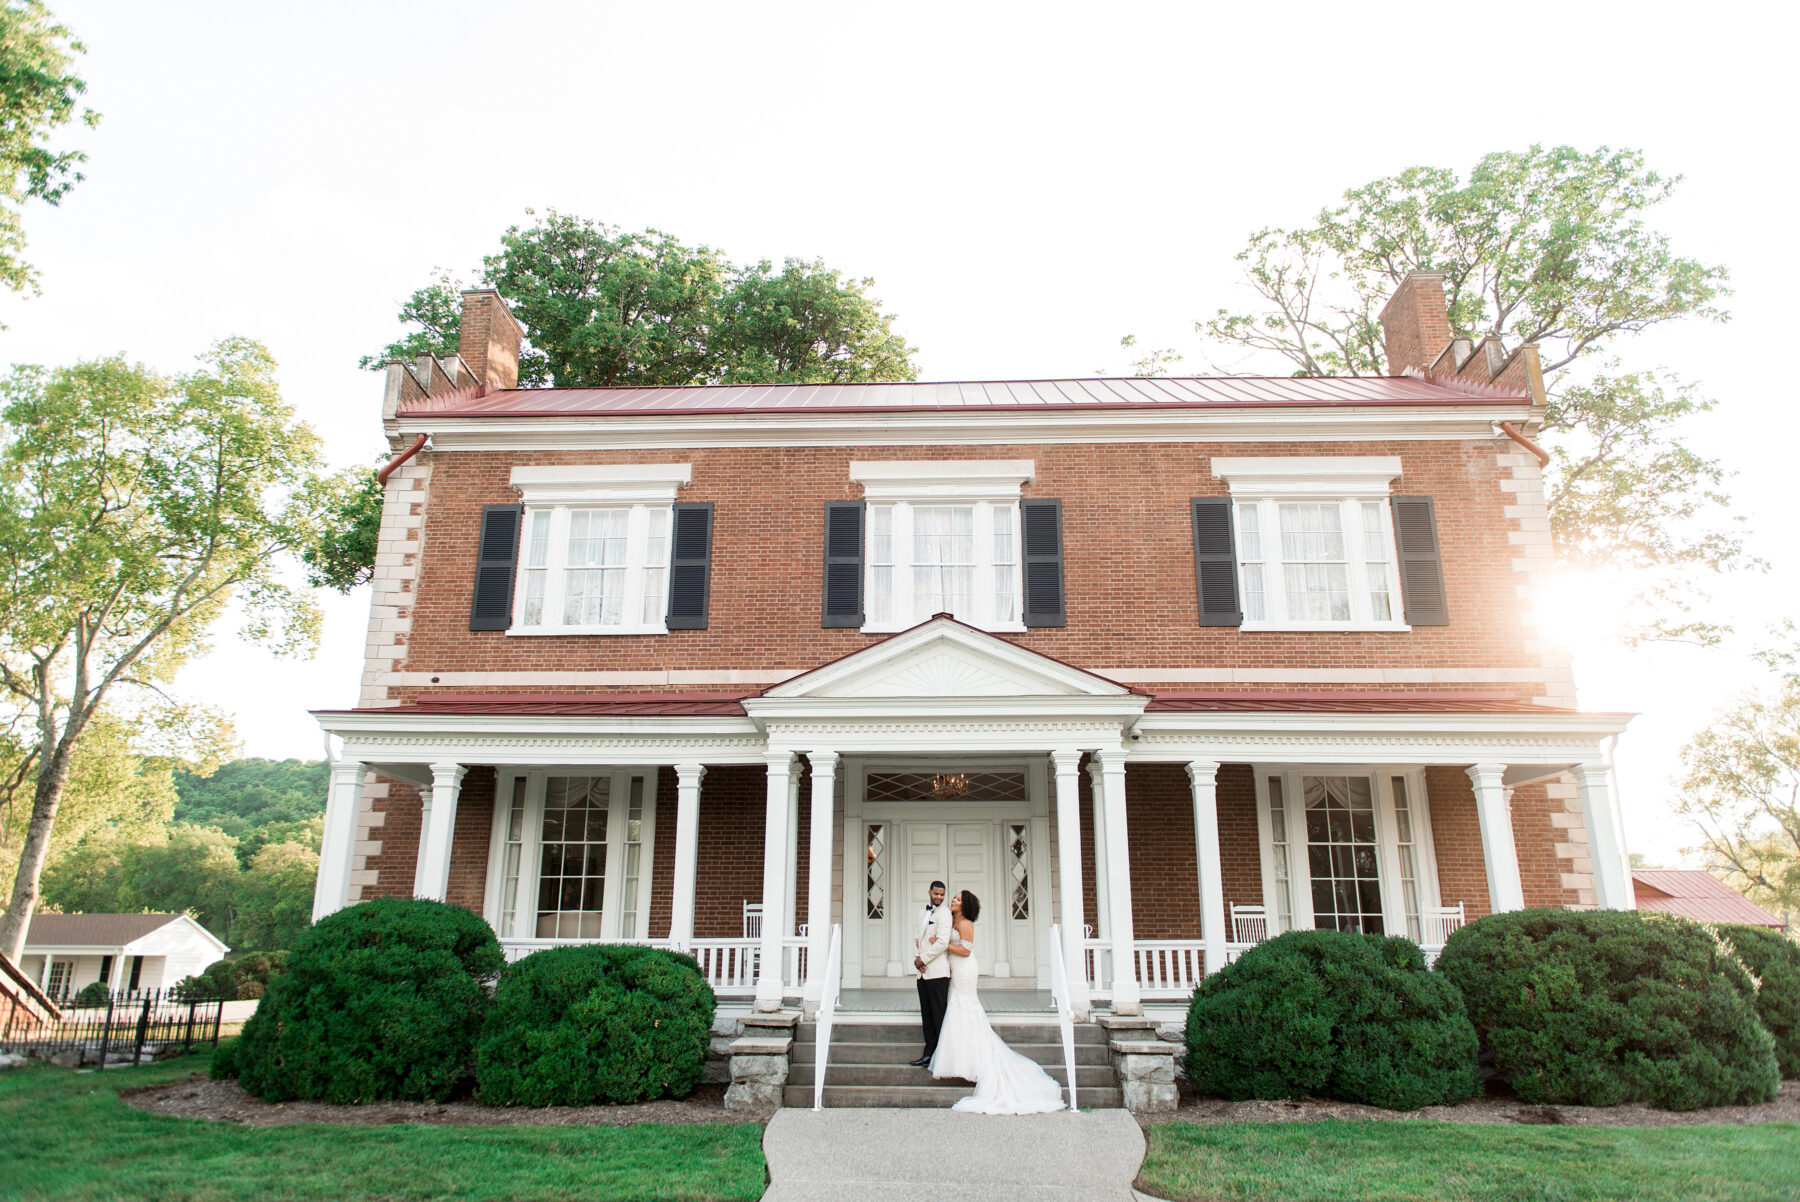 Summer Peach and Tea Inspired Wedding at Ravenswood Mansion in Brentwood, TN. Photography by Ivory Door Studio